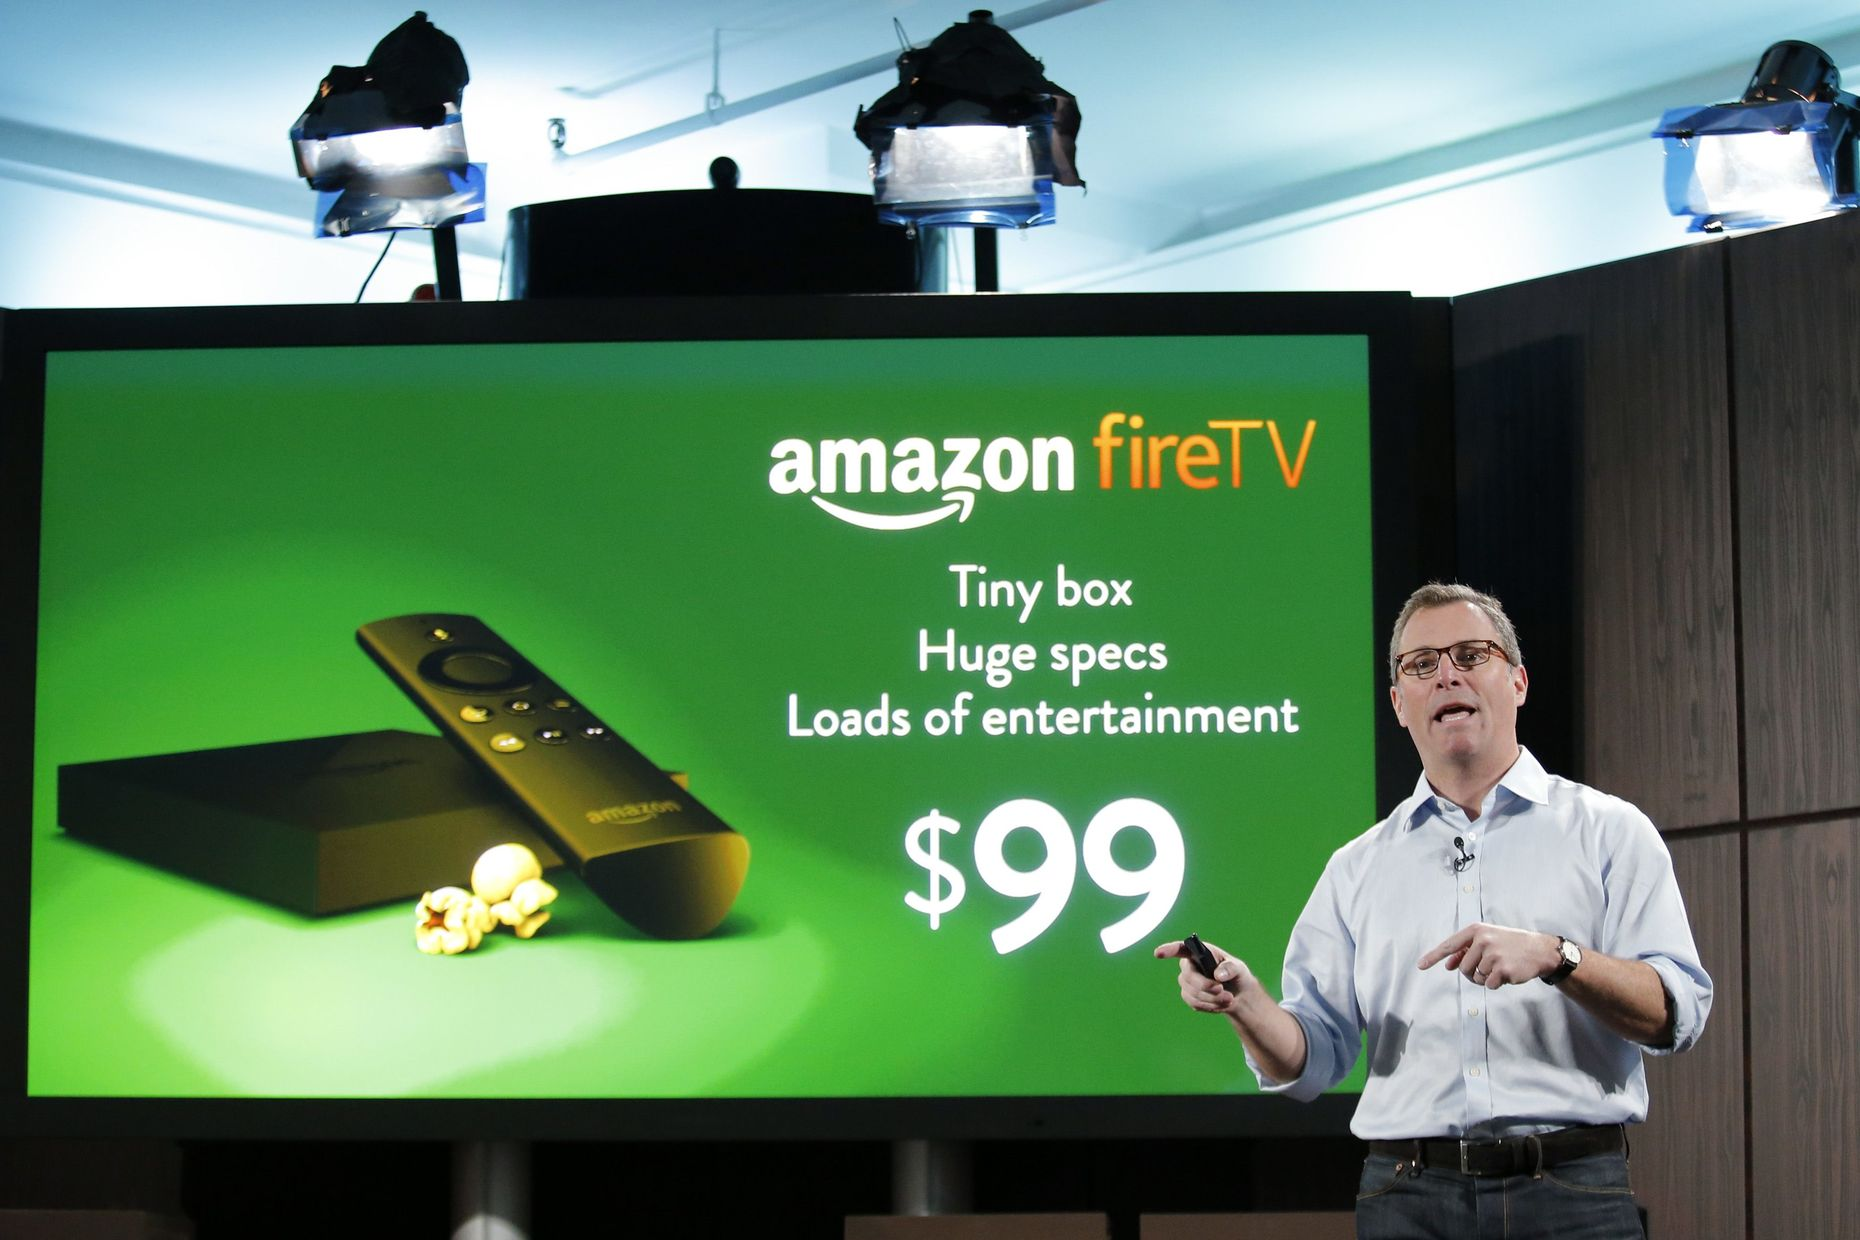 Peter Larsen of Amazon shows the new Amazon Fire TV. Photo by Reuters/ Eduardo Munoz.